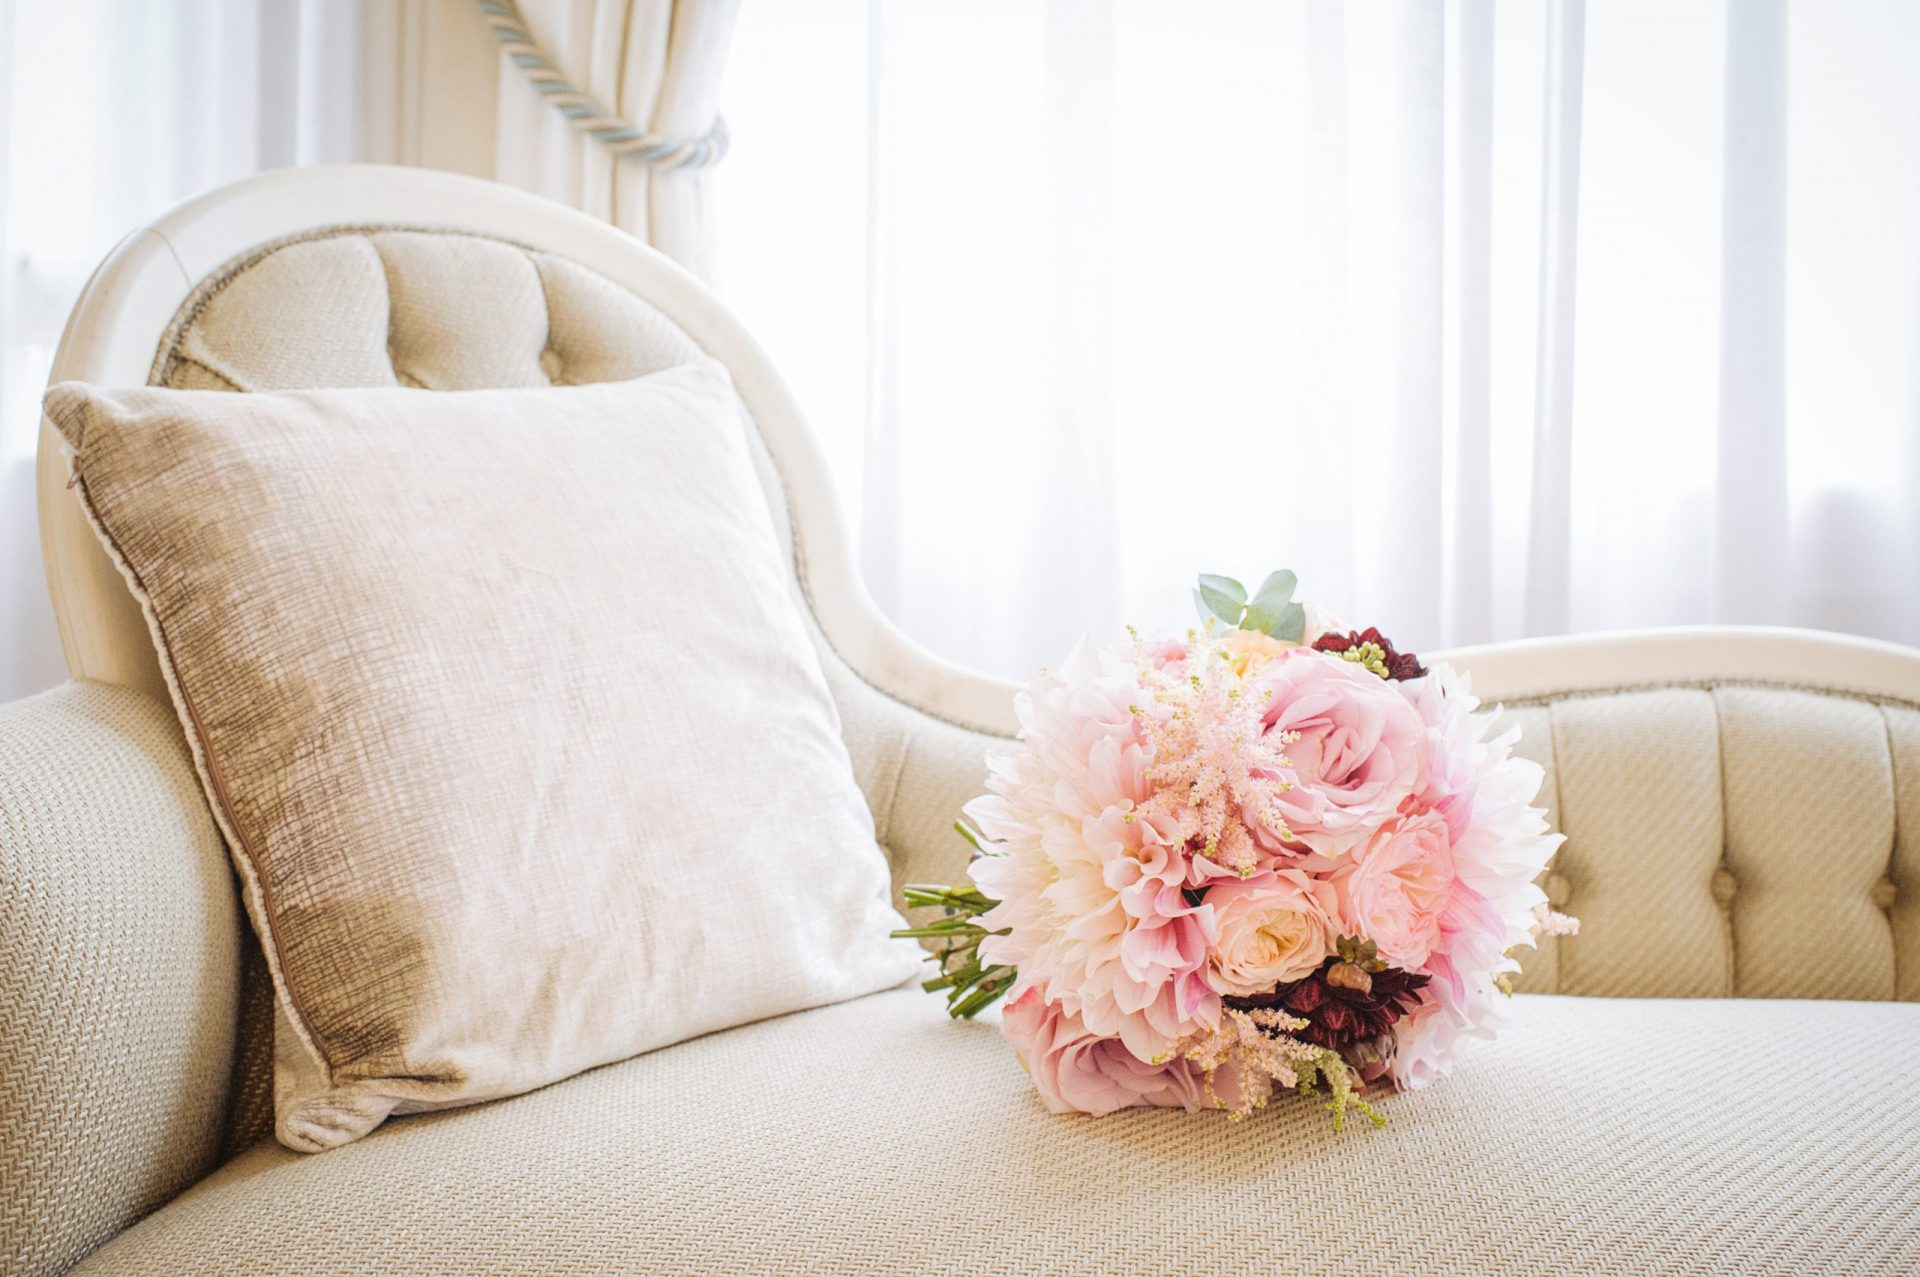 Beautiful blush and pink bridal bouquet laying on a chair